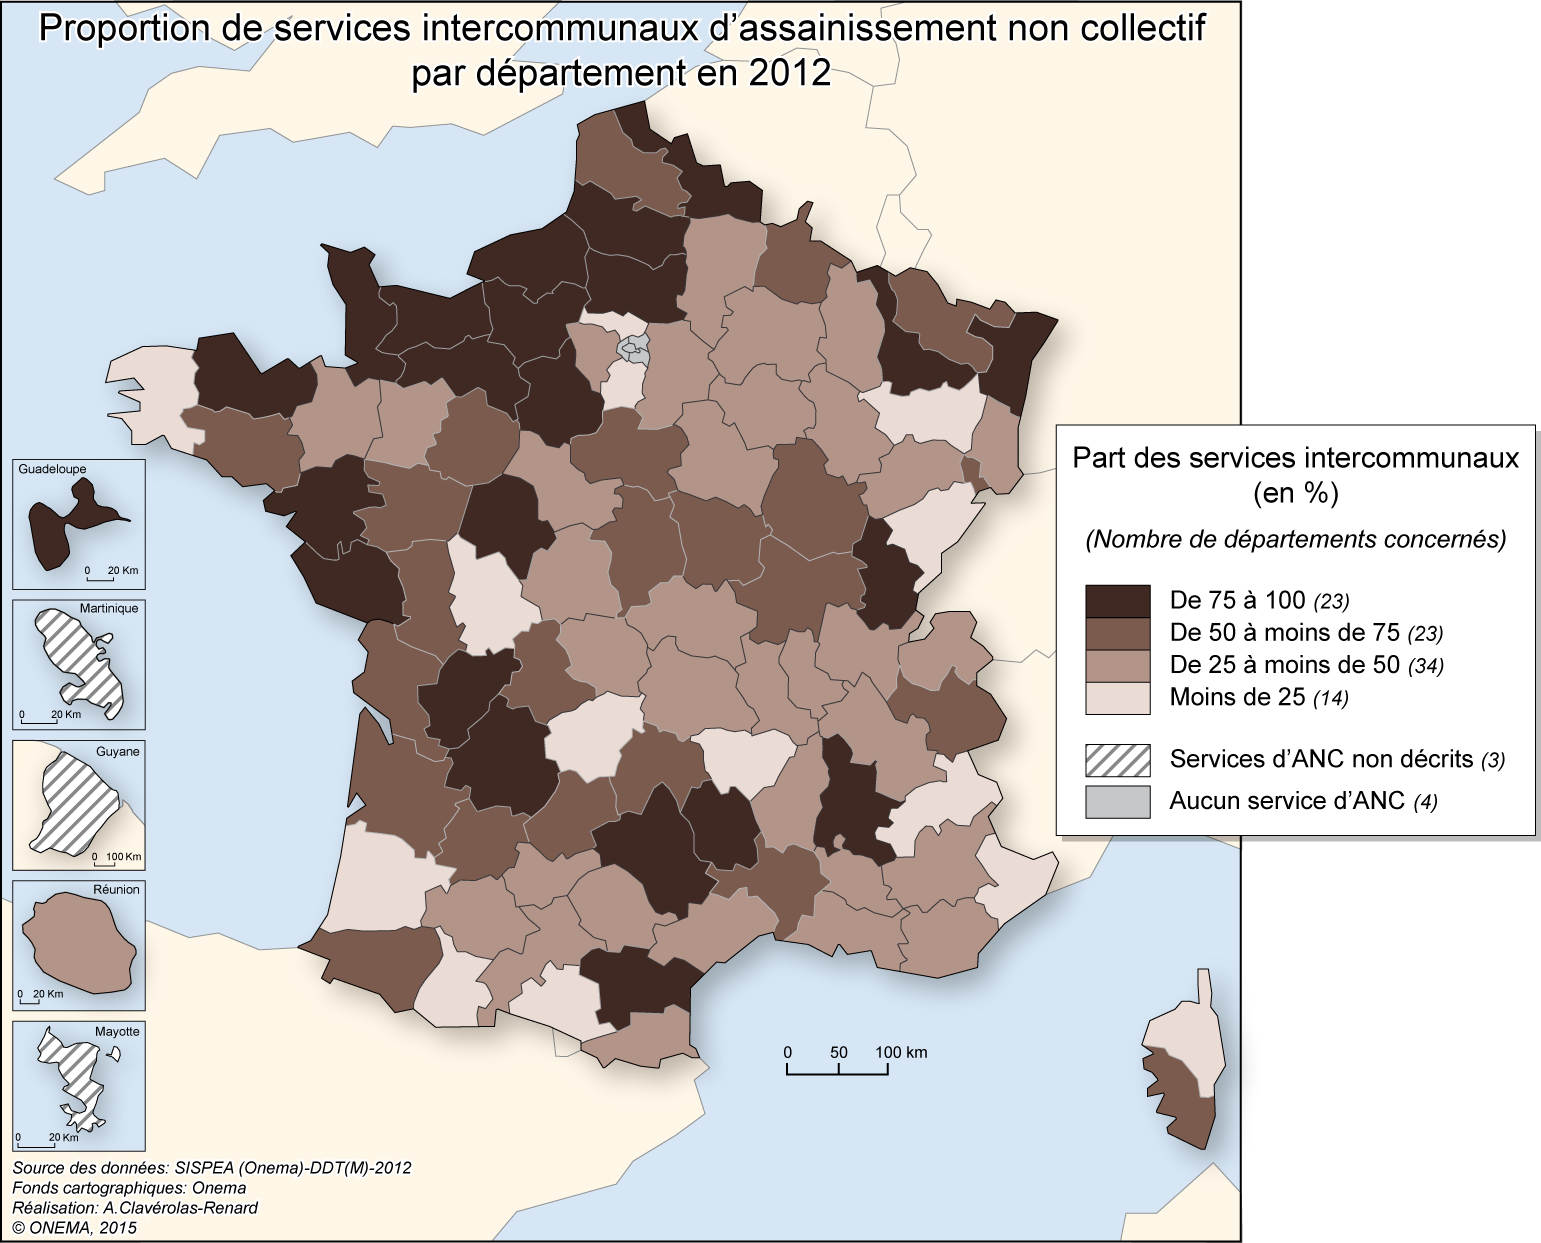 2)	Proportion de services intercommunaux d'assainissement non collectif en 2012